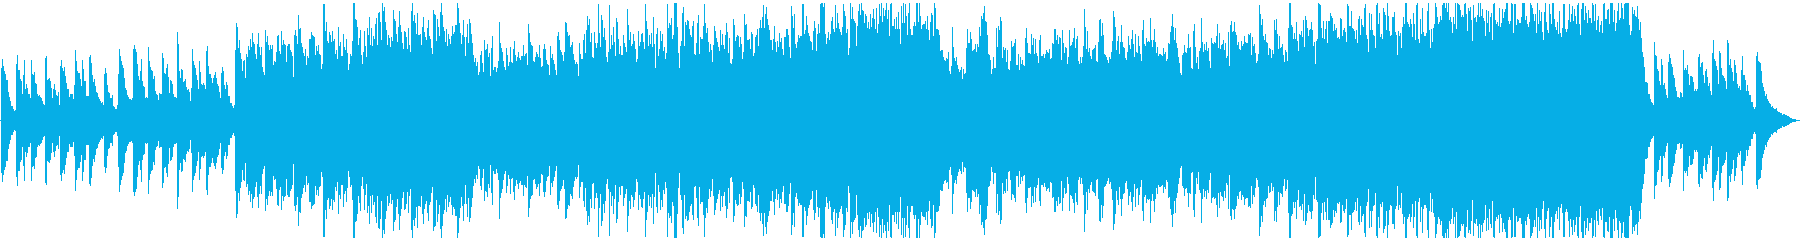 Inspire Me's reproduced waveform